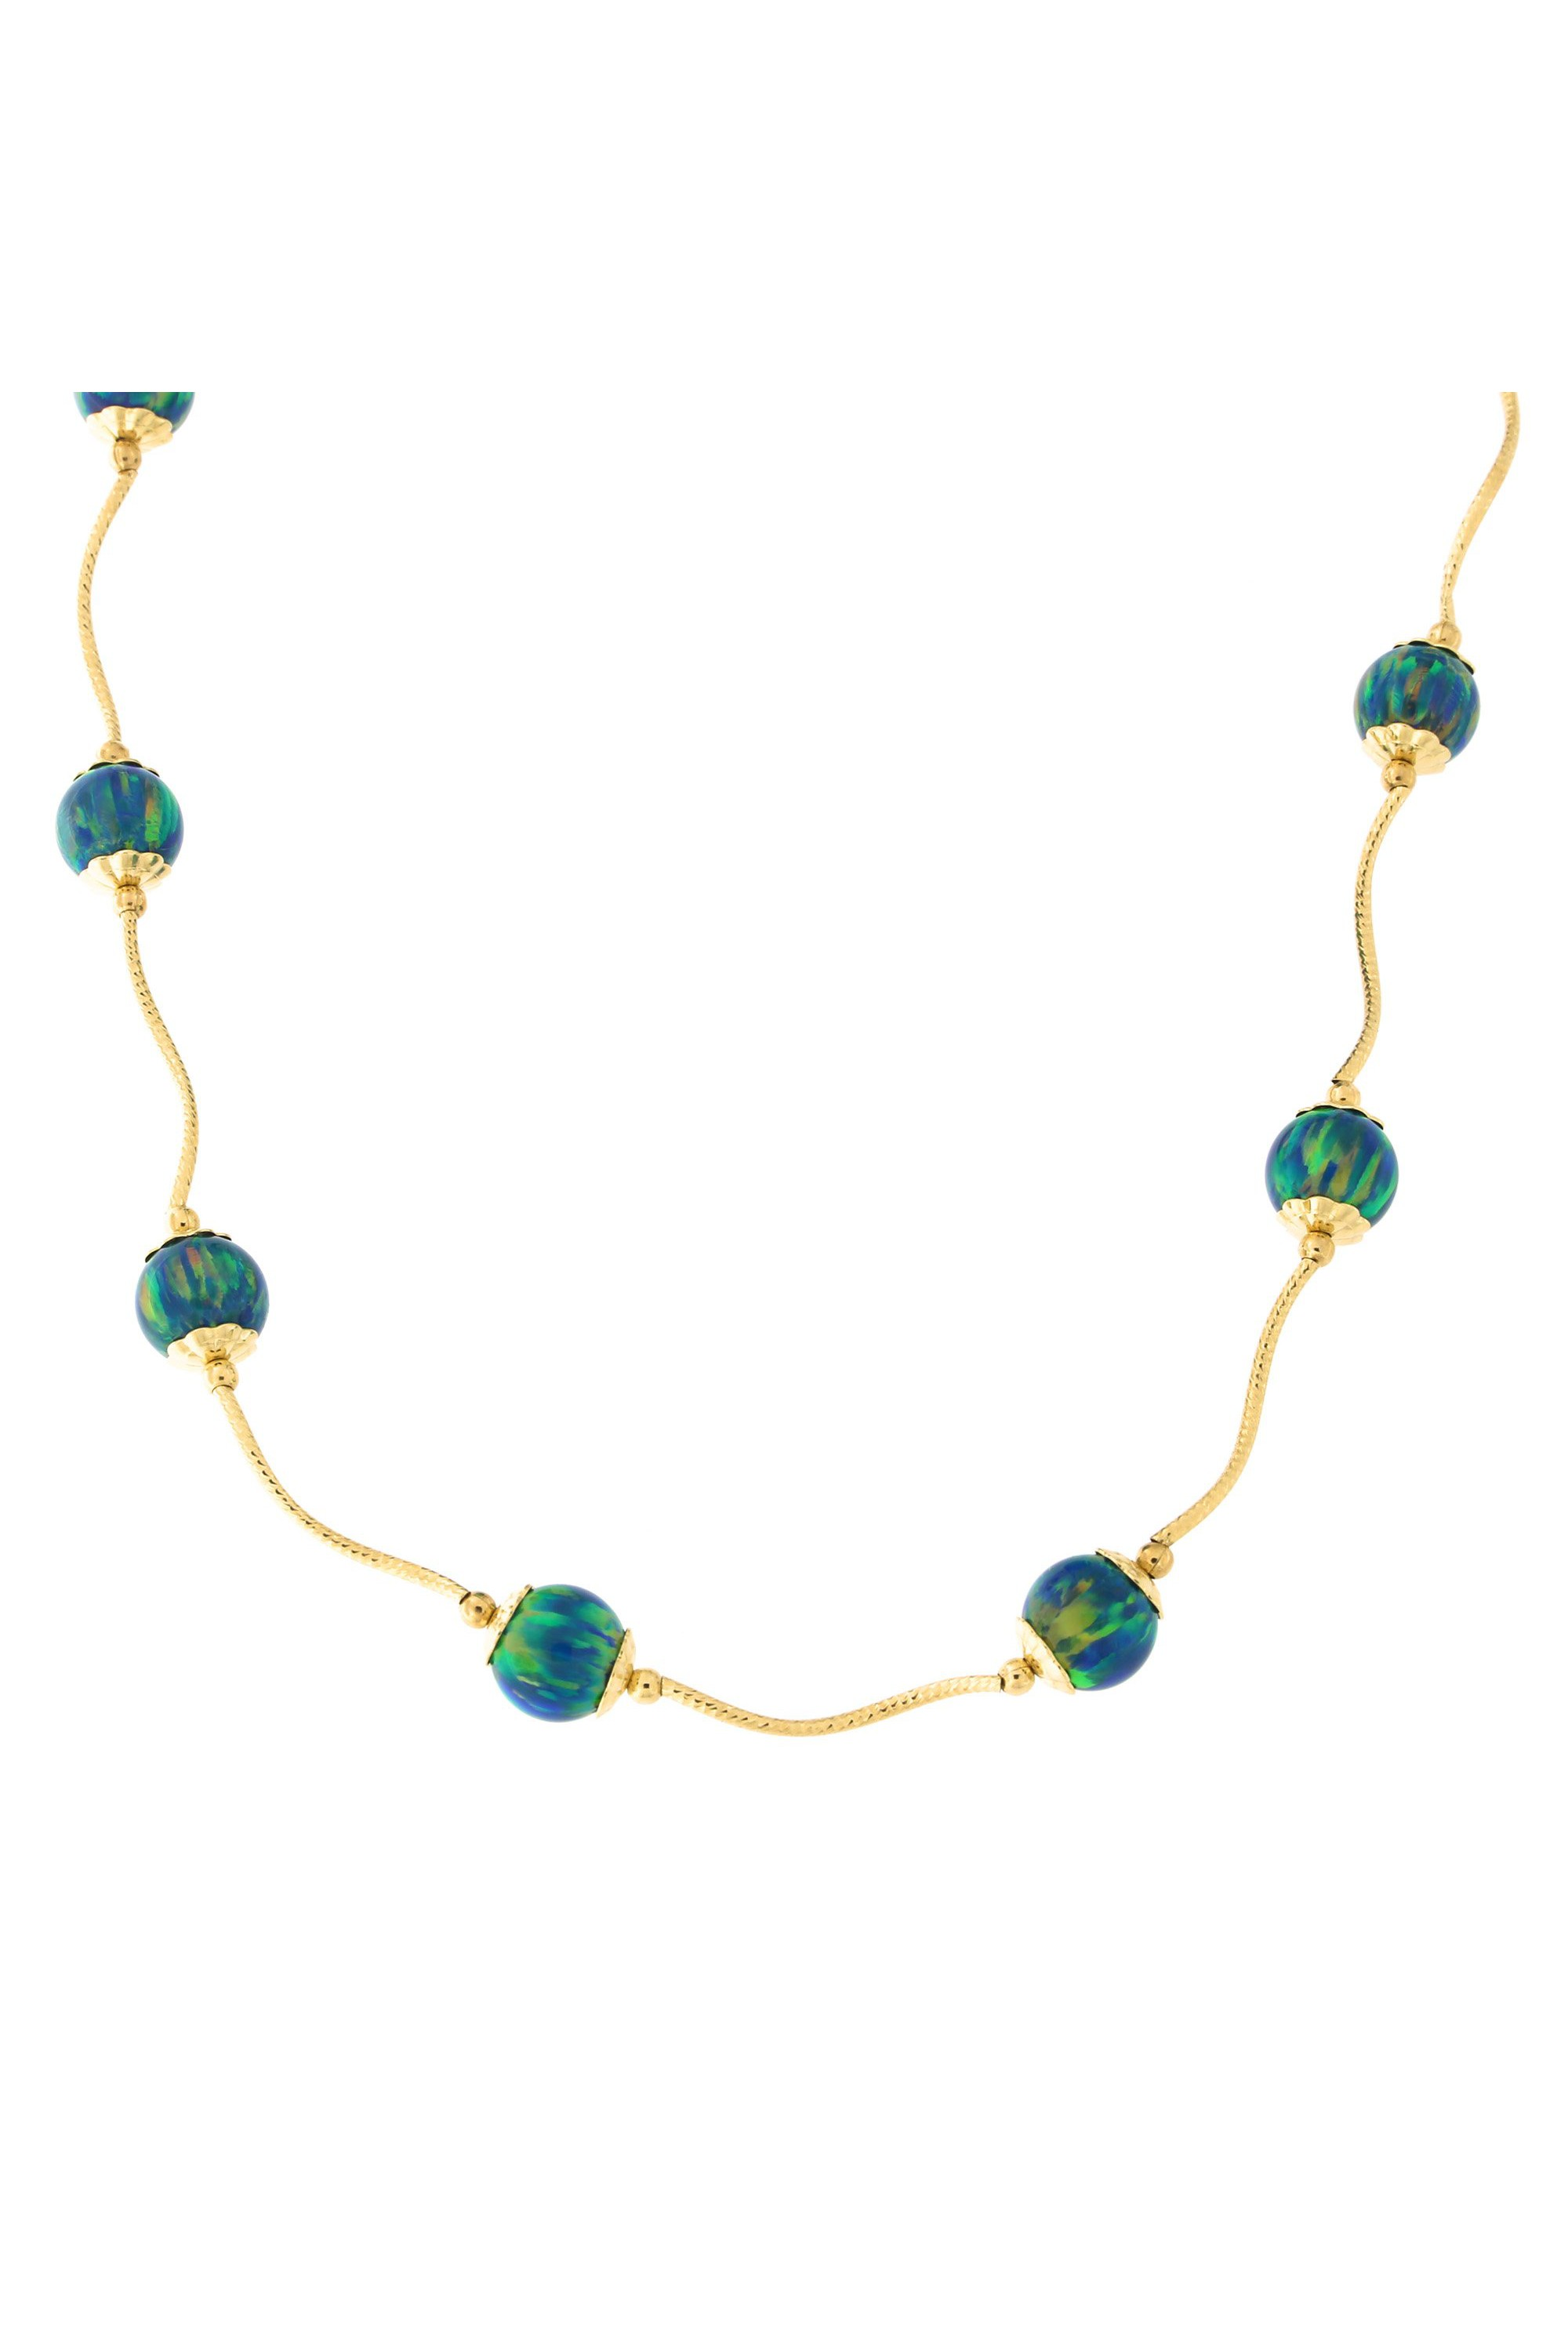 Beauniq 14k Yellow Gold Diamond Cut Capped Simulated Green Opal Station Necklace, 18 inches by